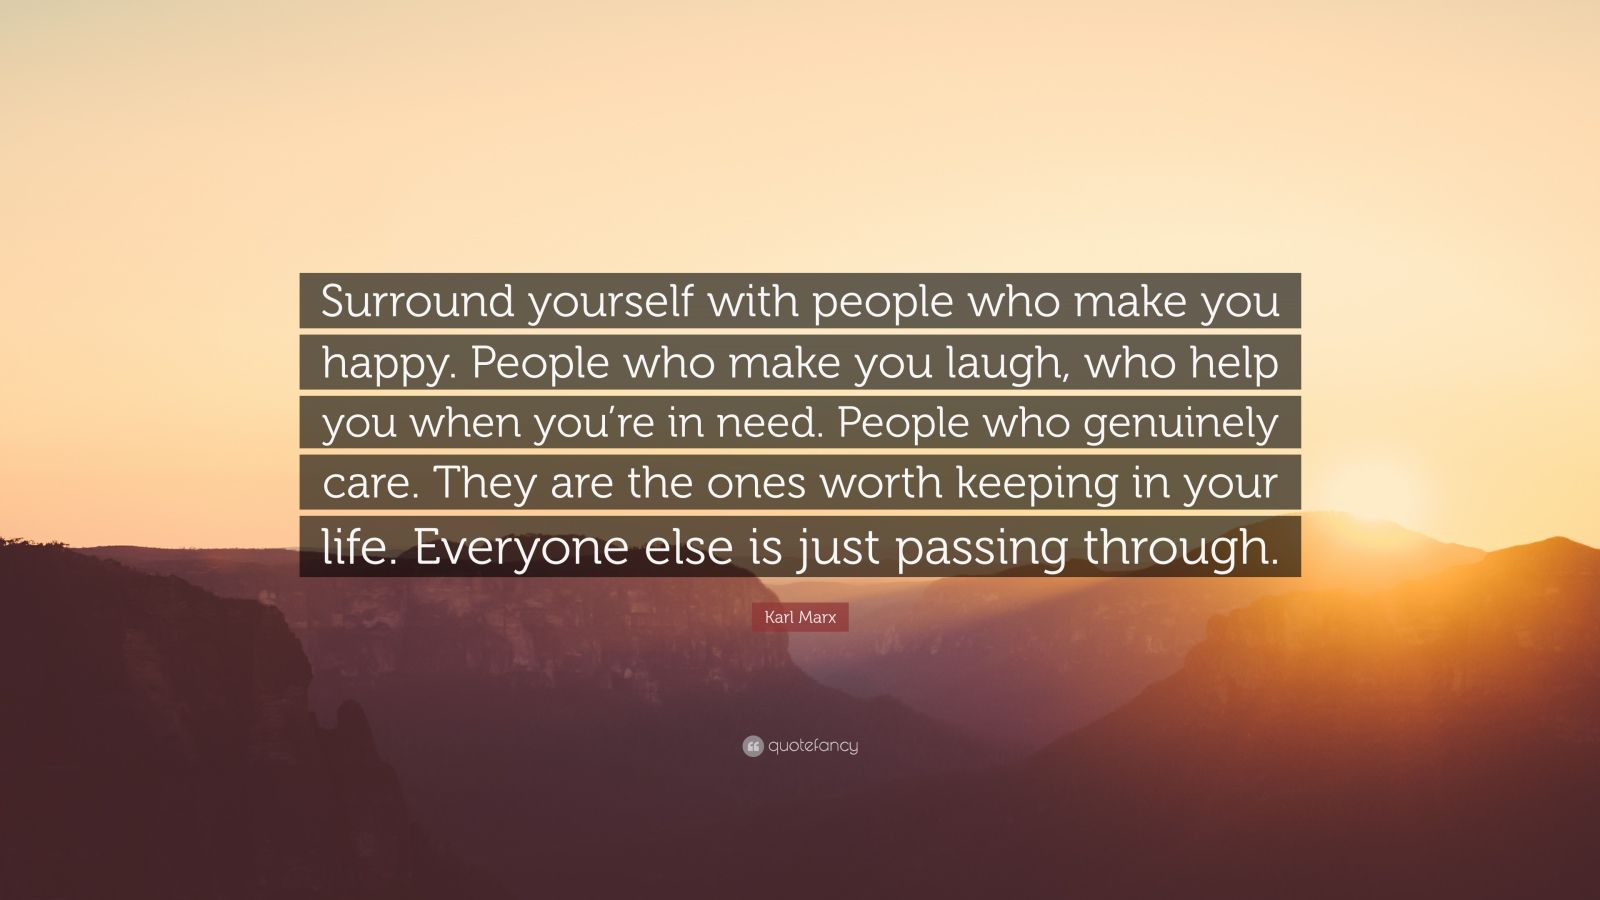 """Karl Marx Quote: """"Surround yourself with people who make you happy. People who make you laugh, who help you when you're in need. People who genuinely care. They are the ones worth keeping in your life. Everyone else is just passing through."""""""